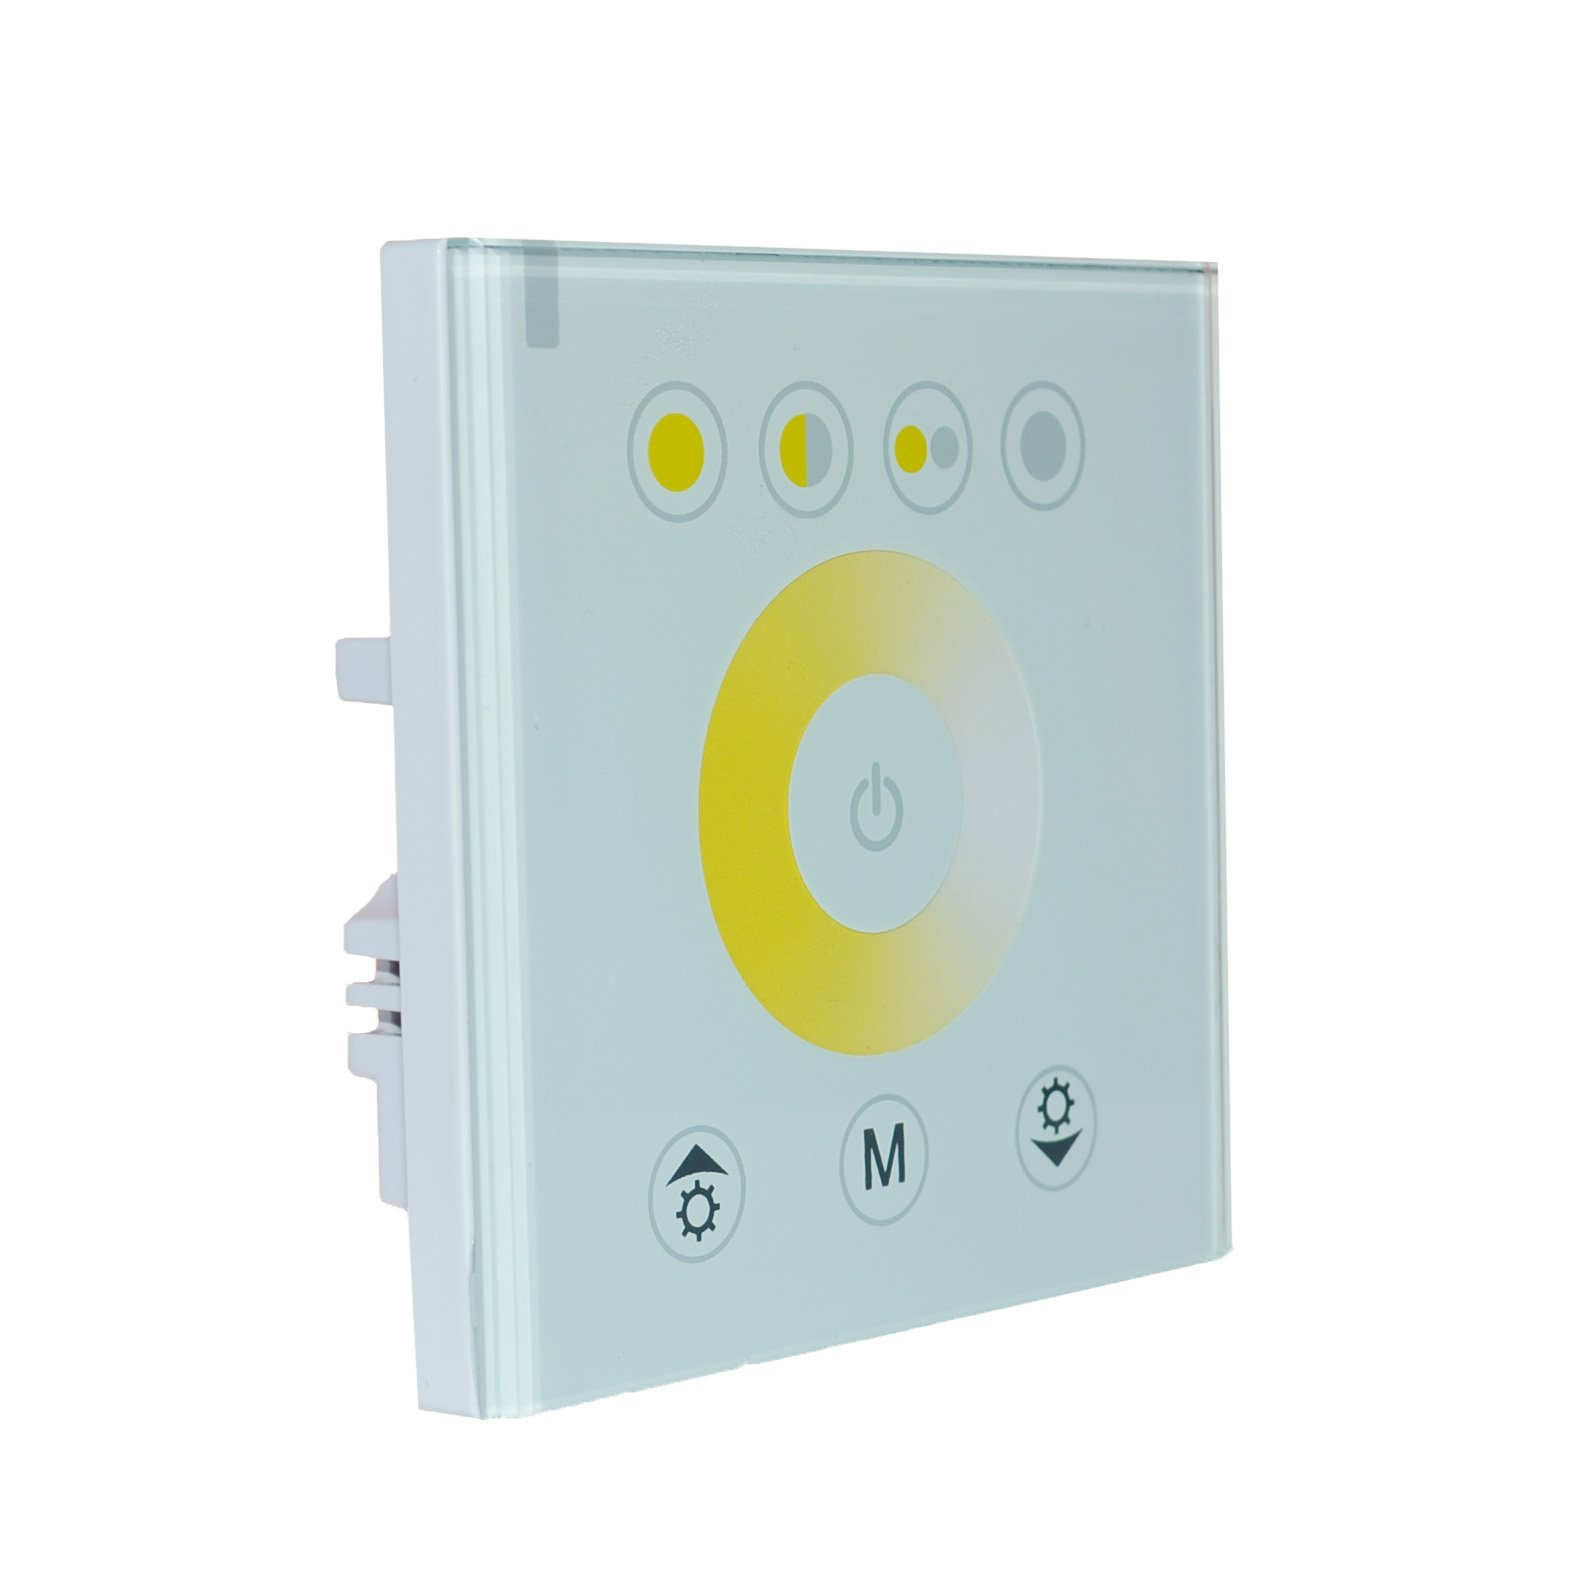 Led Strip Dimmer Controller,Wall-Mounted Touch Panel Switch Color Temperature Changing Adjustable,Glass Surface VS Plastic Screen Higher Sensitivity